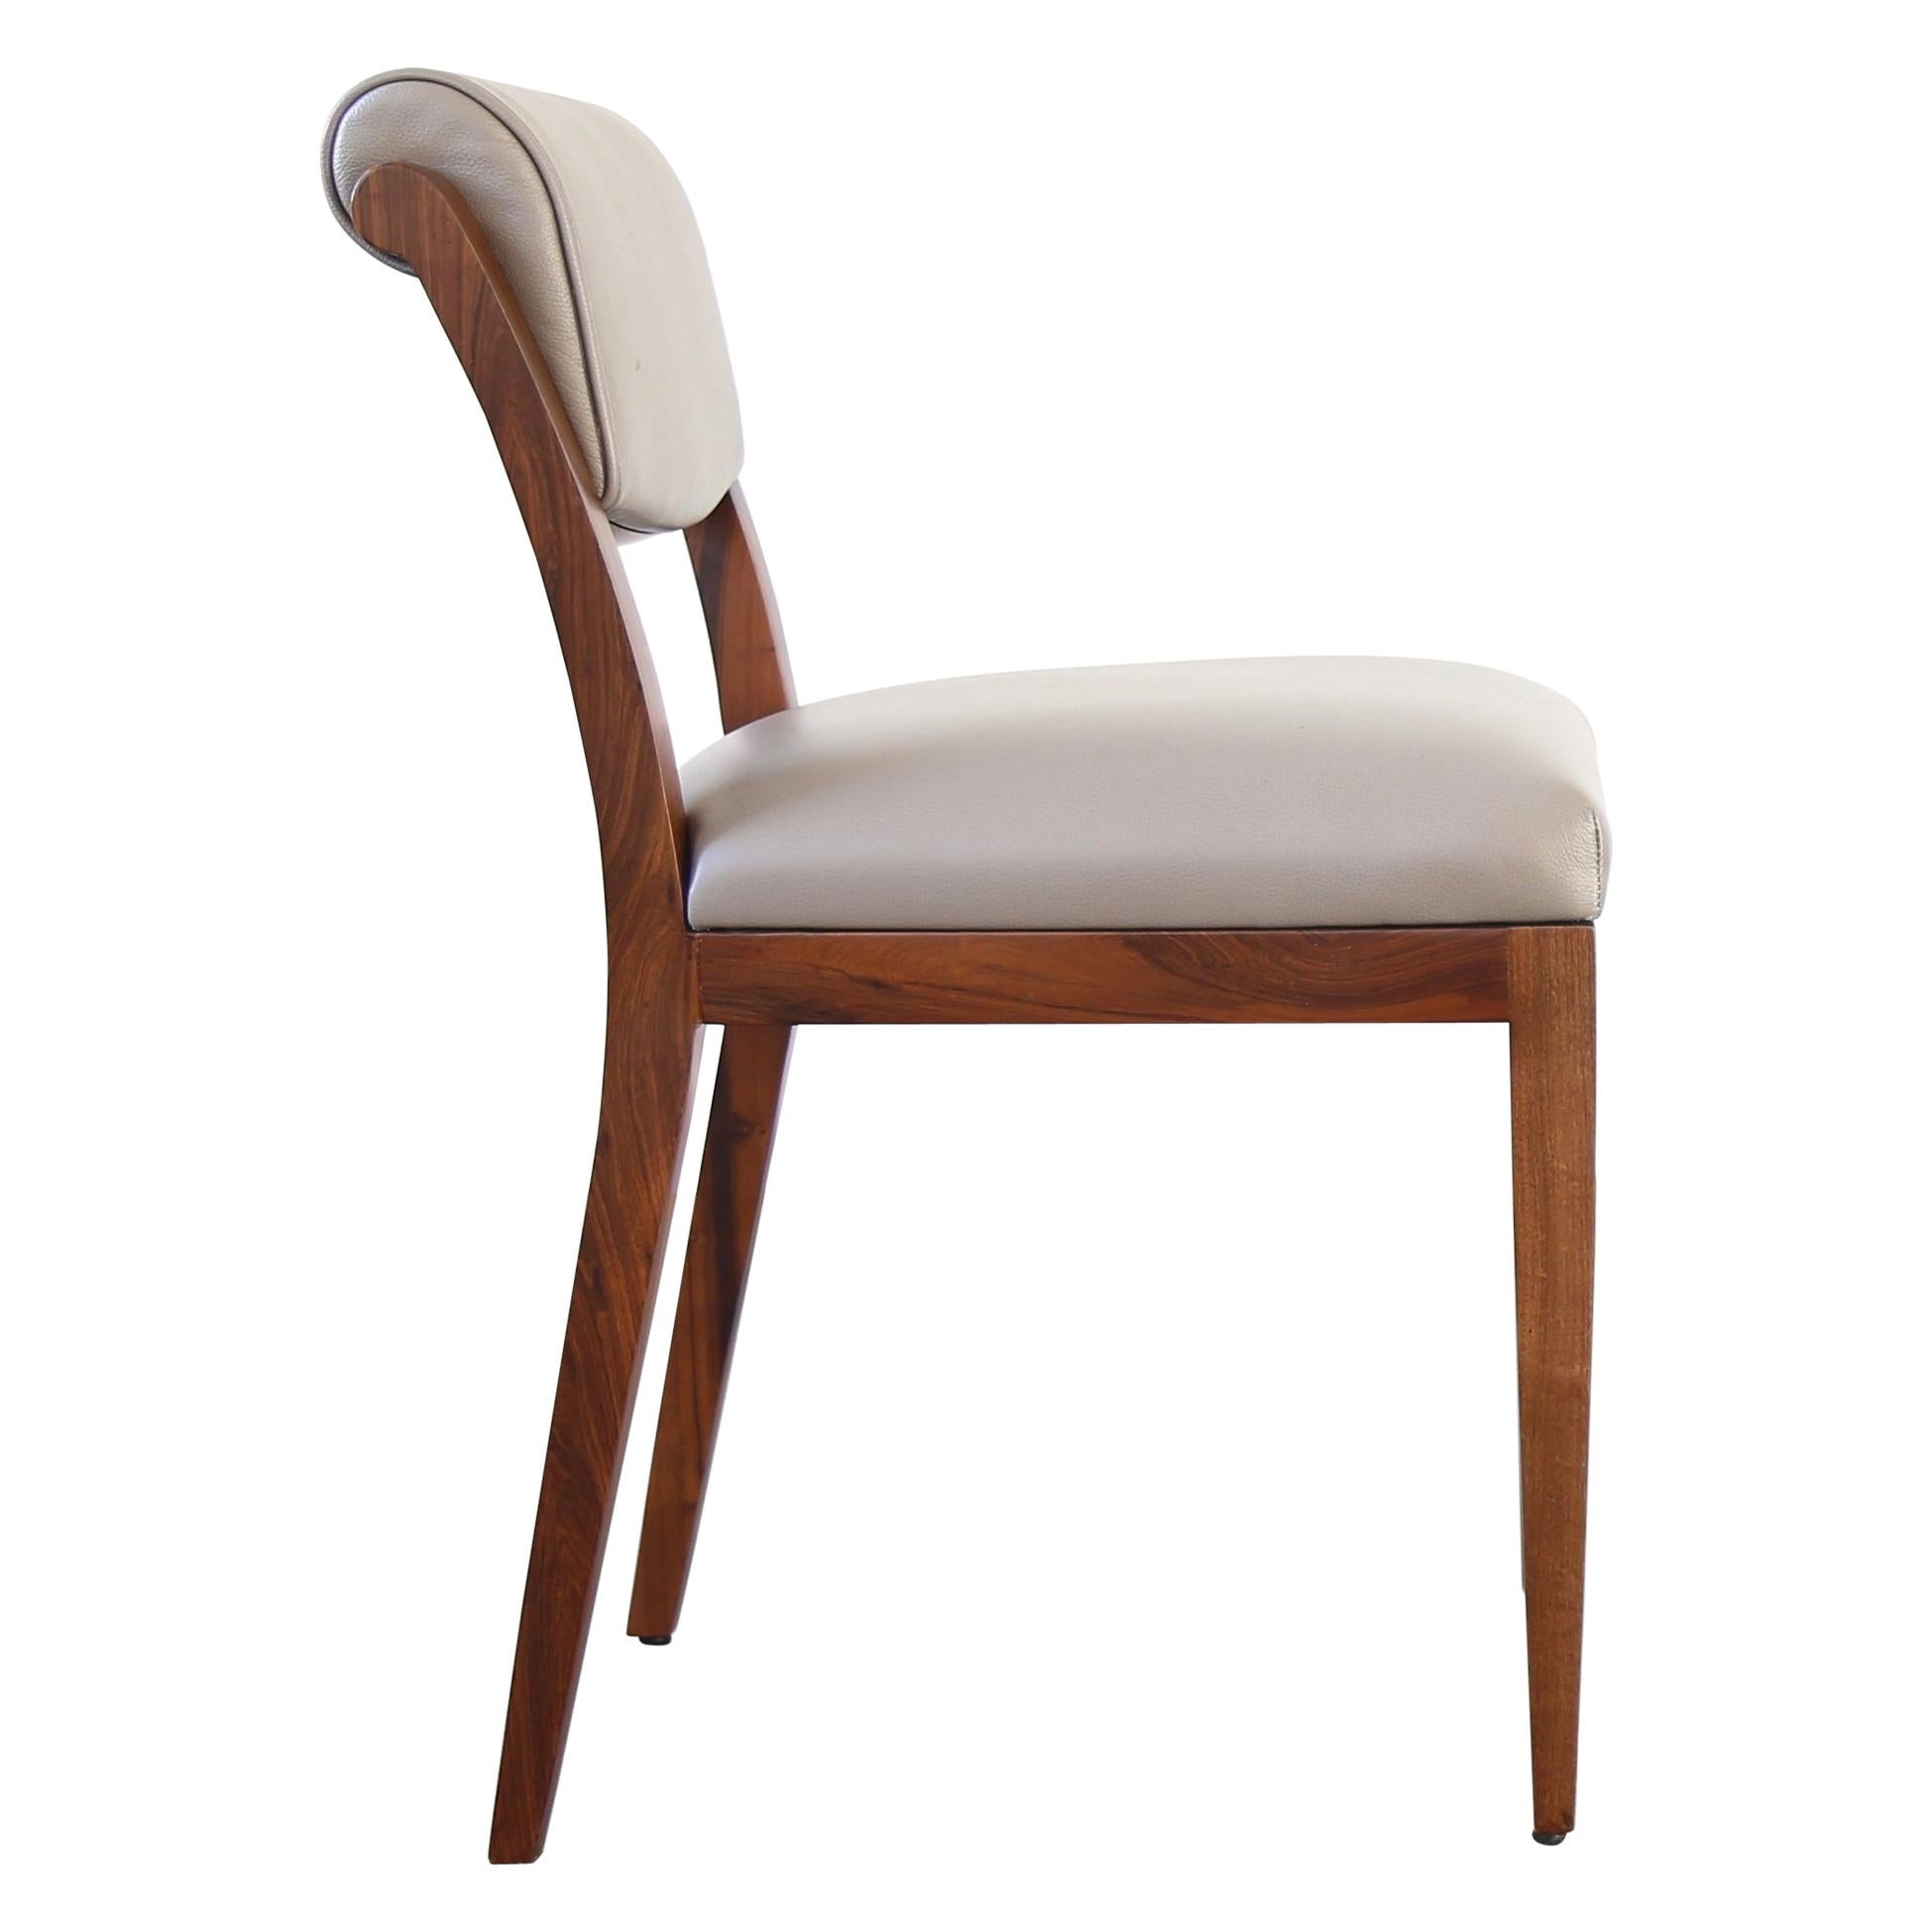 Delicieux Gianni Contemporary Art Deco Style Leather Dining Chair From Costantini